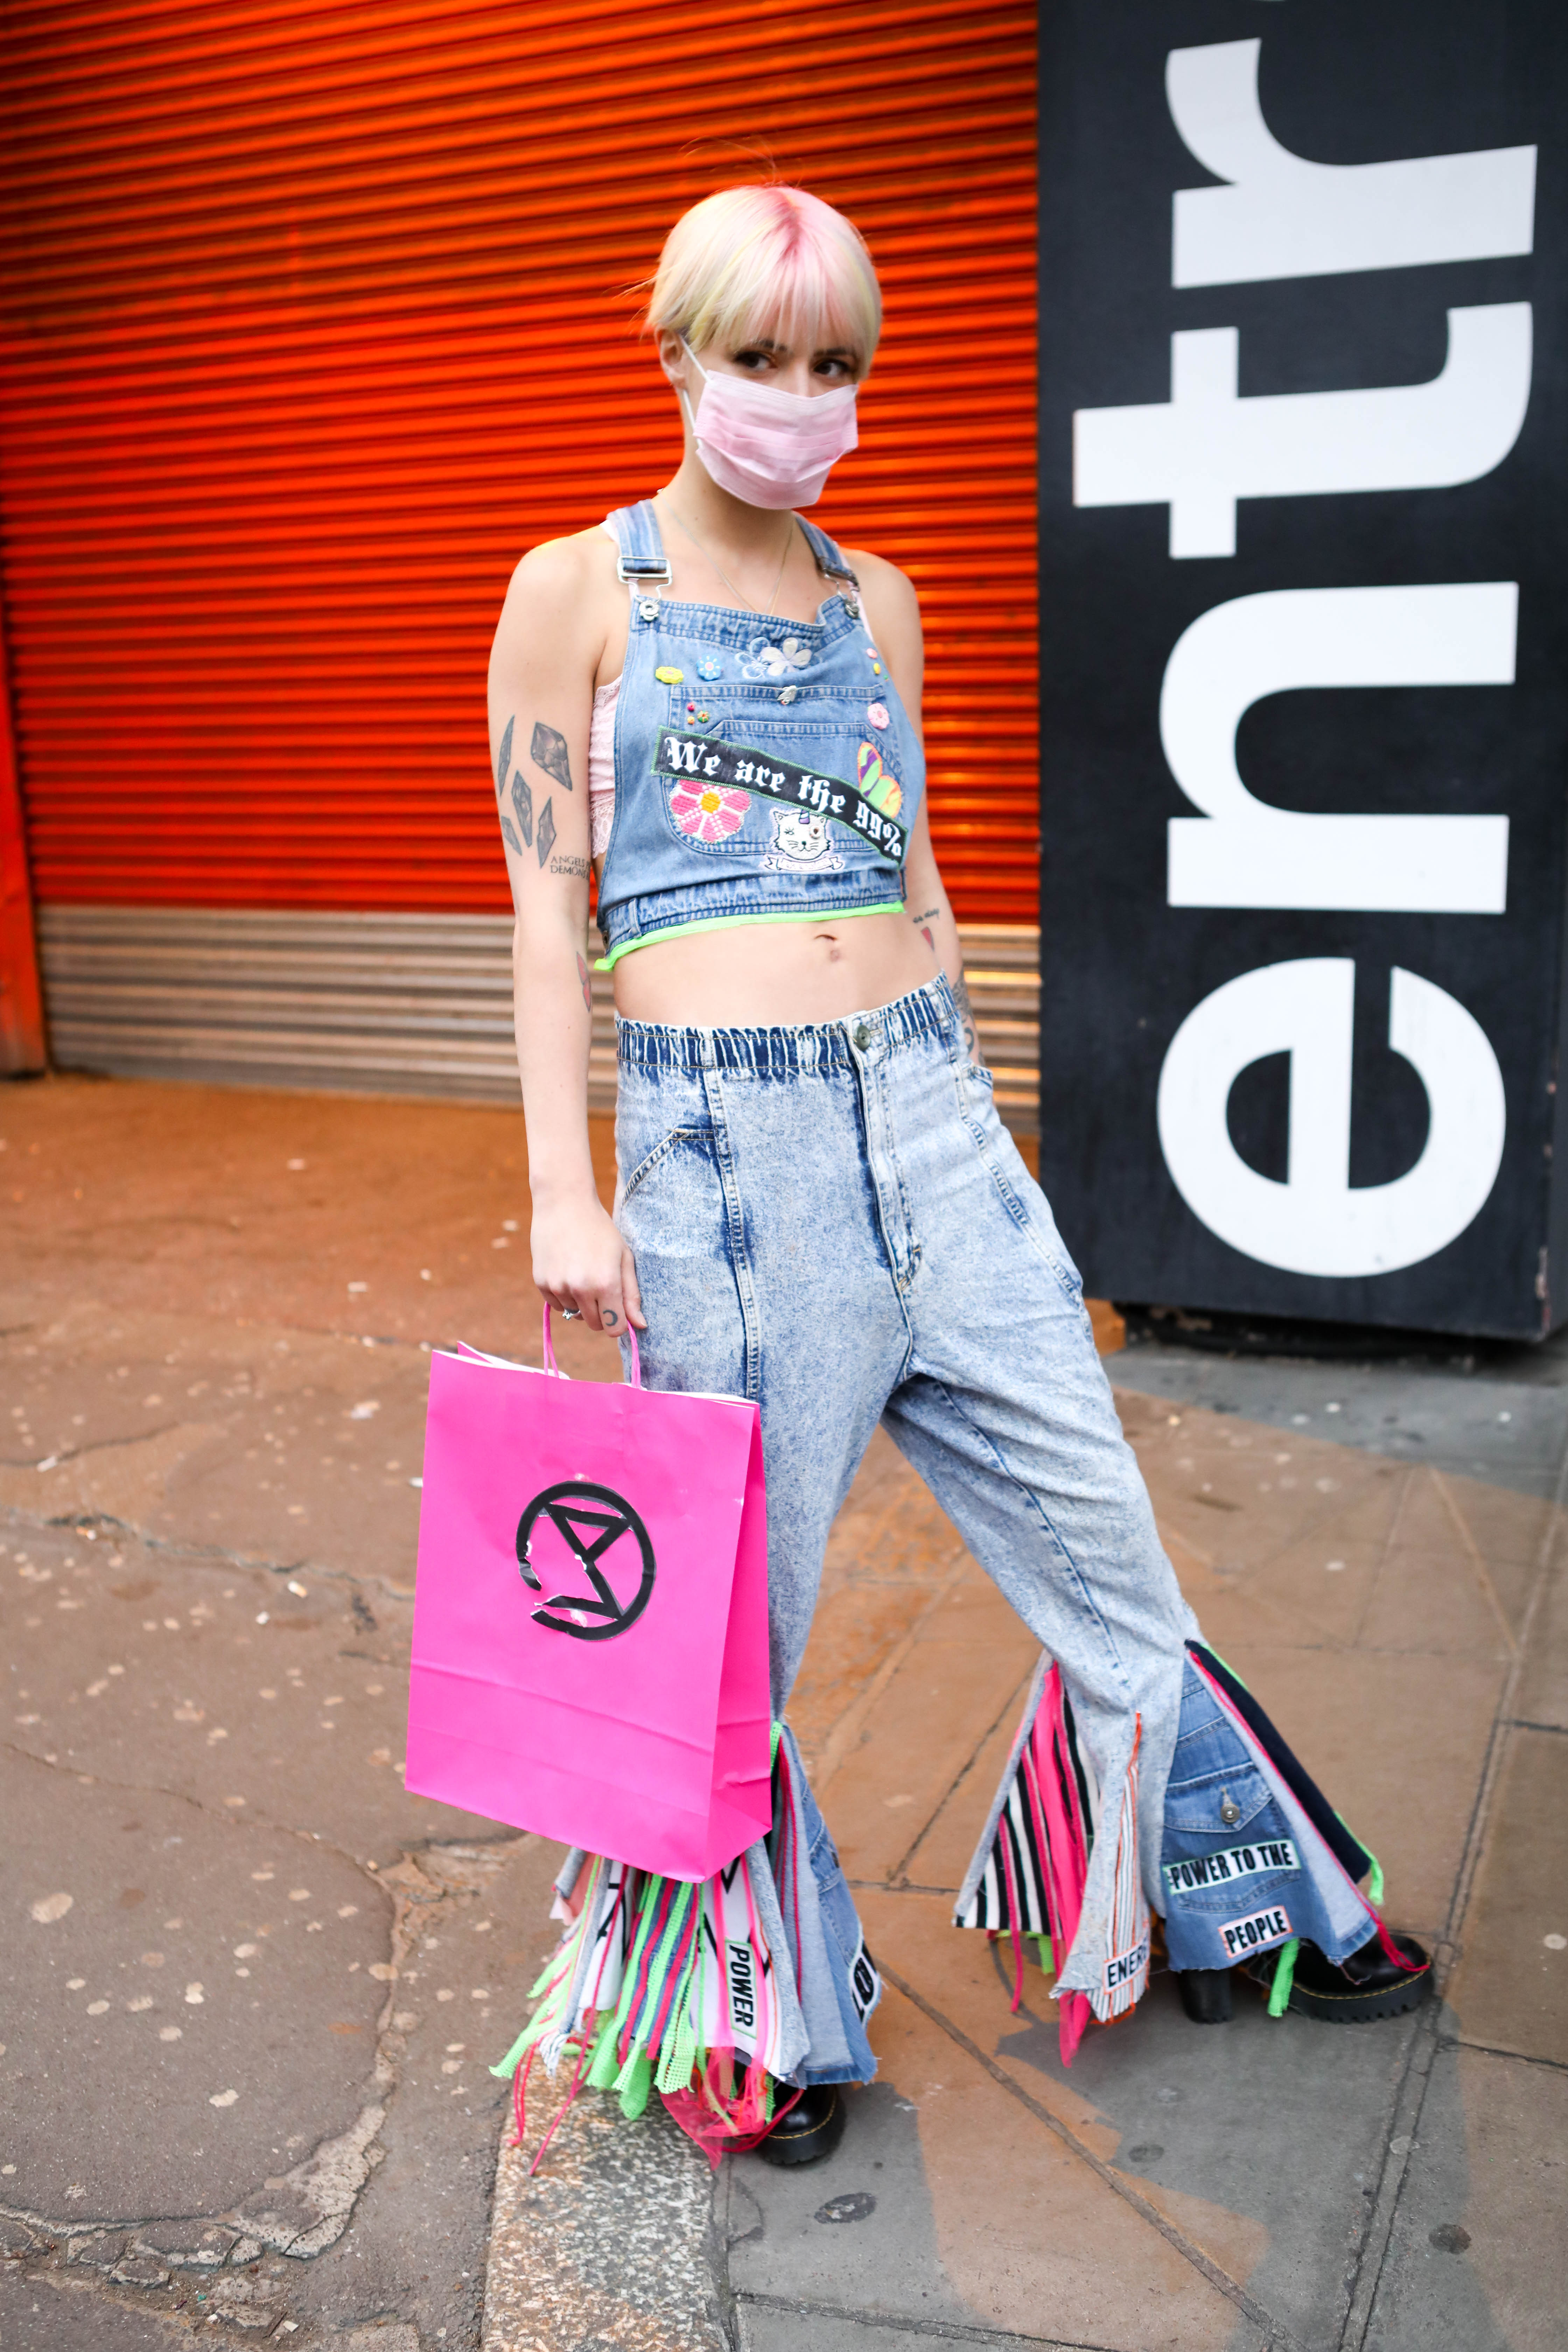 Environmental campaign group Extinction Rebellion hold a fashion show on Oxford Circus to highlight issues of un-sustainability in fashion and how its practices impact on the environment.Extinction Rebellion fashion show, London, UK - 12 Apr 2019